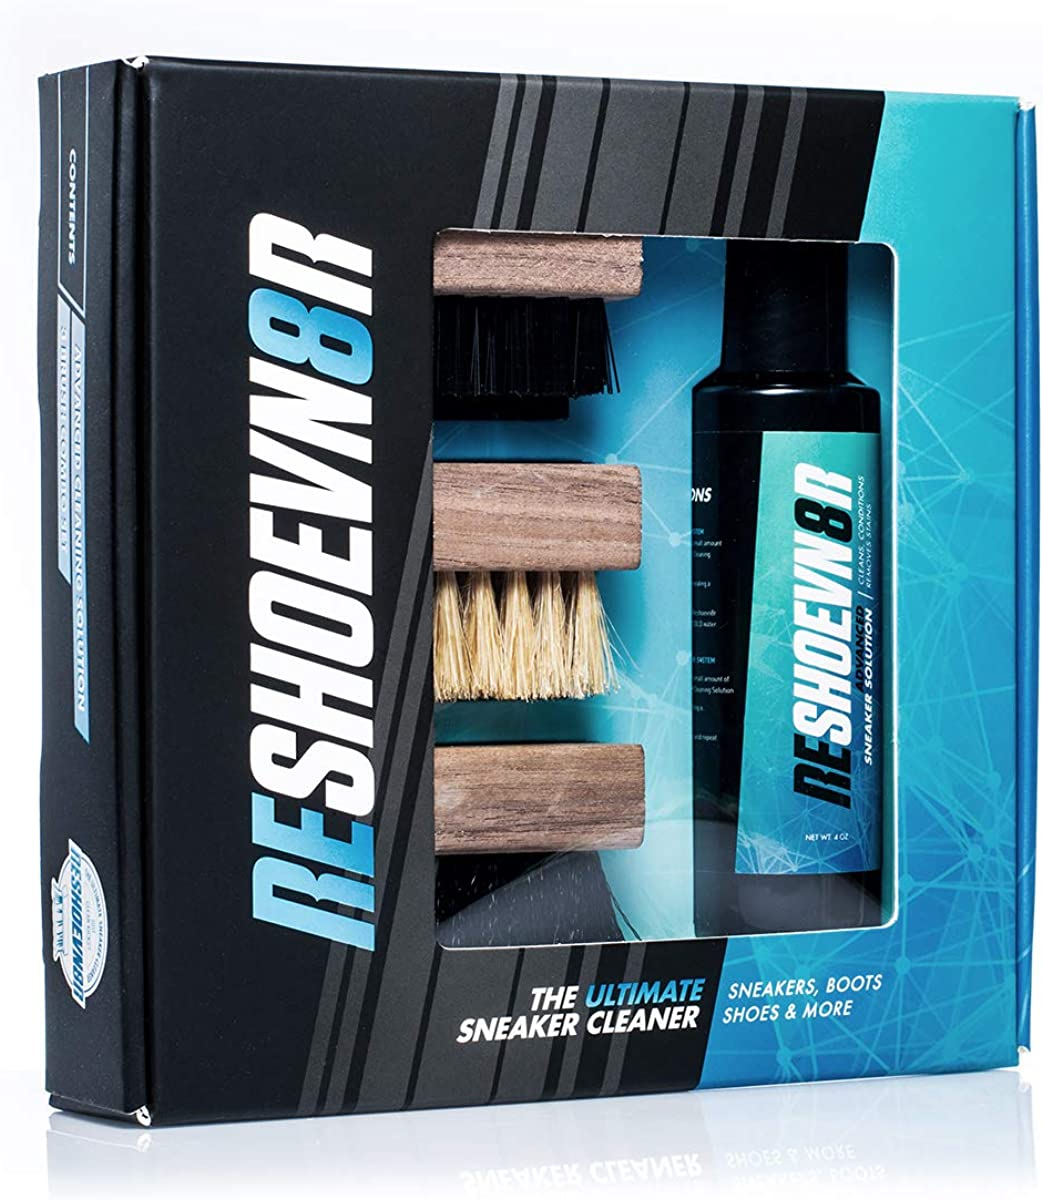 Reshoevn8r 4 oz. 3 Brush Shoe Cleaning Kit